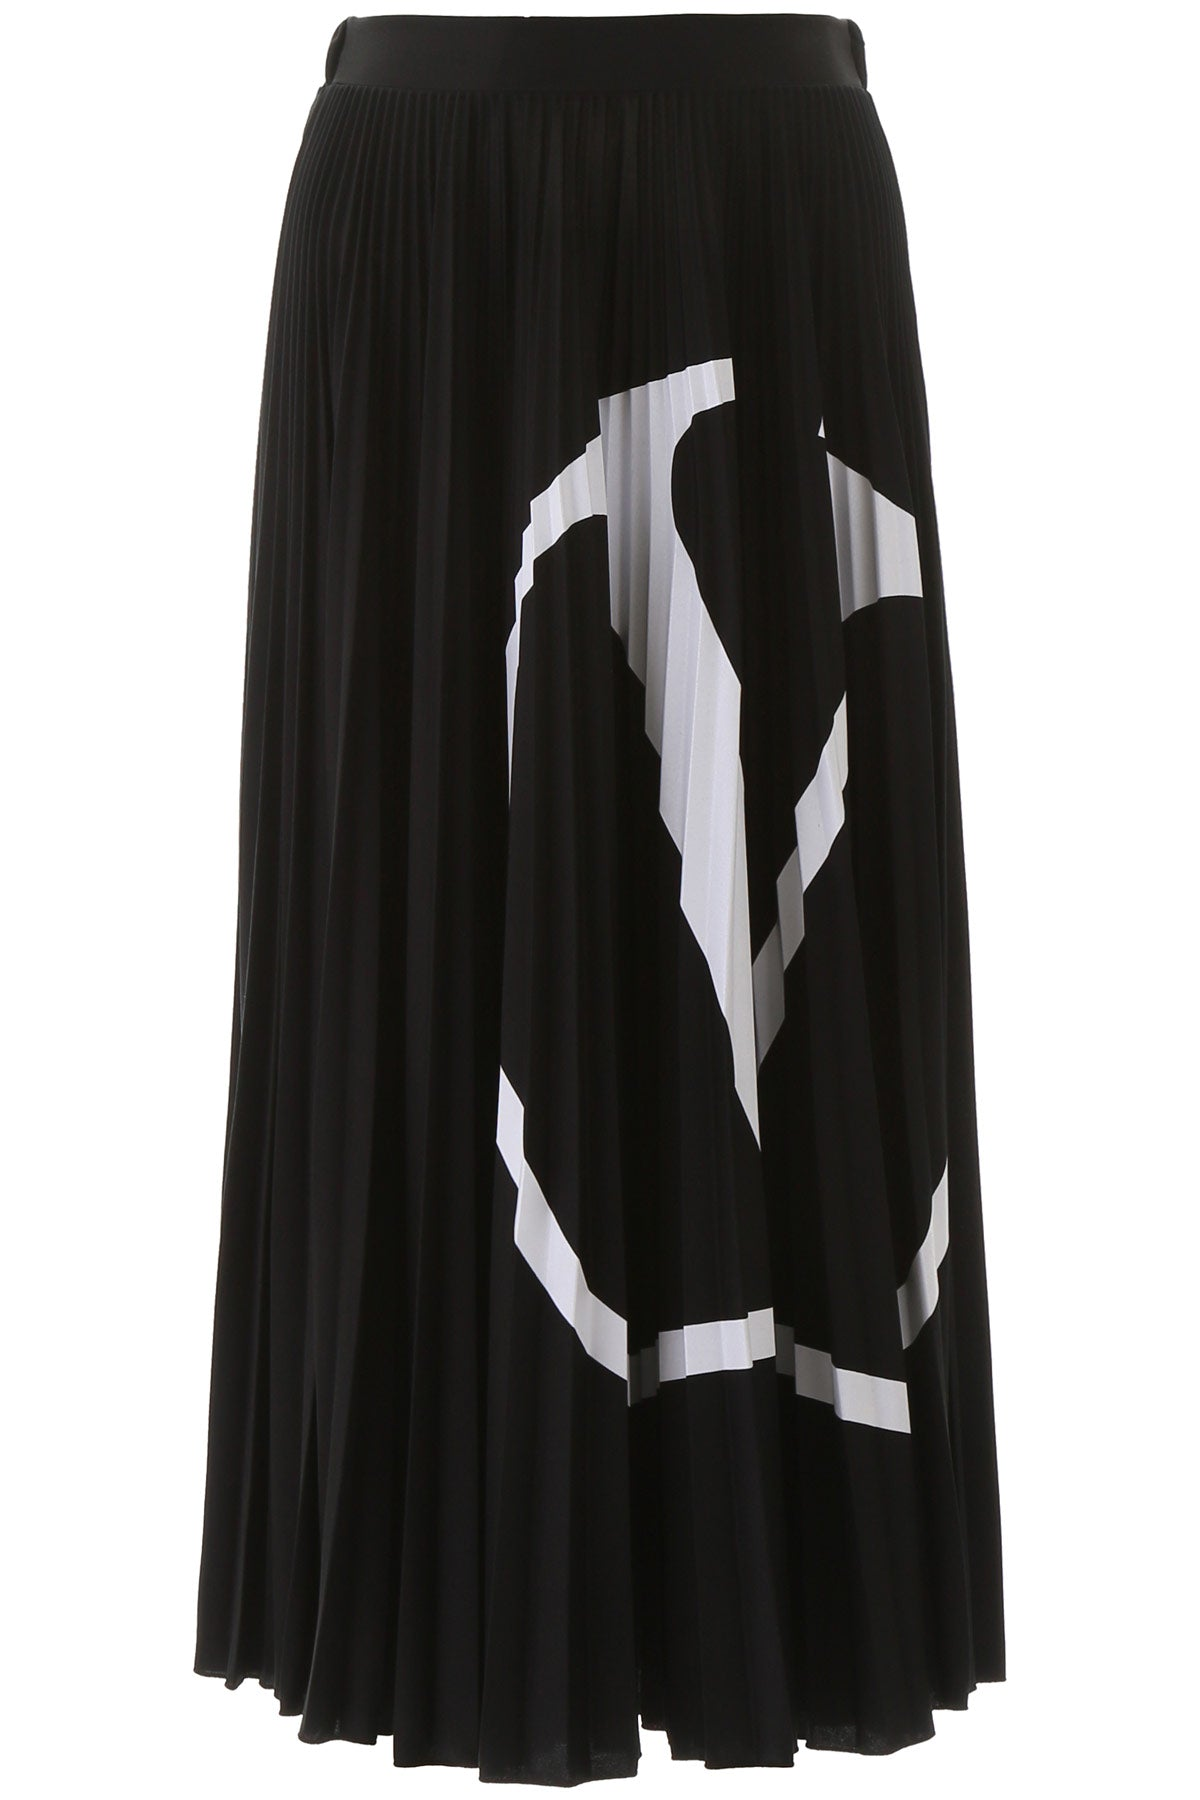 Valentino Skirts VALENTINO VLOGO PLEATED MIDI SKIRT